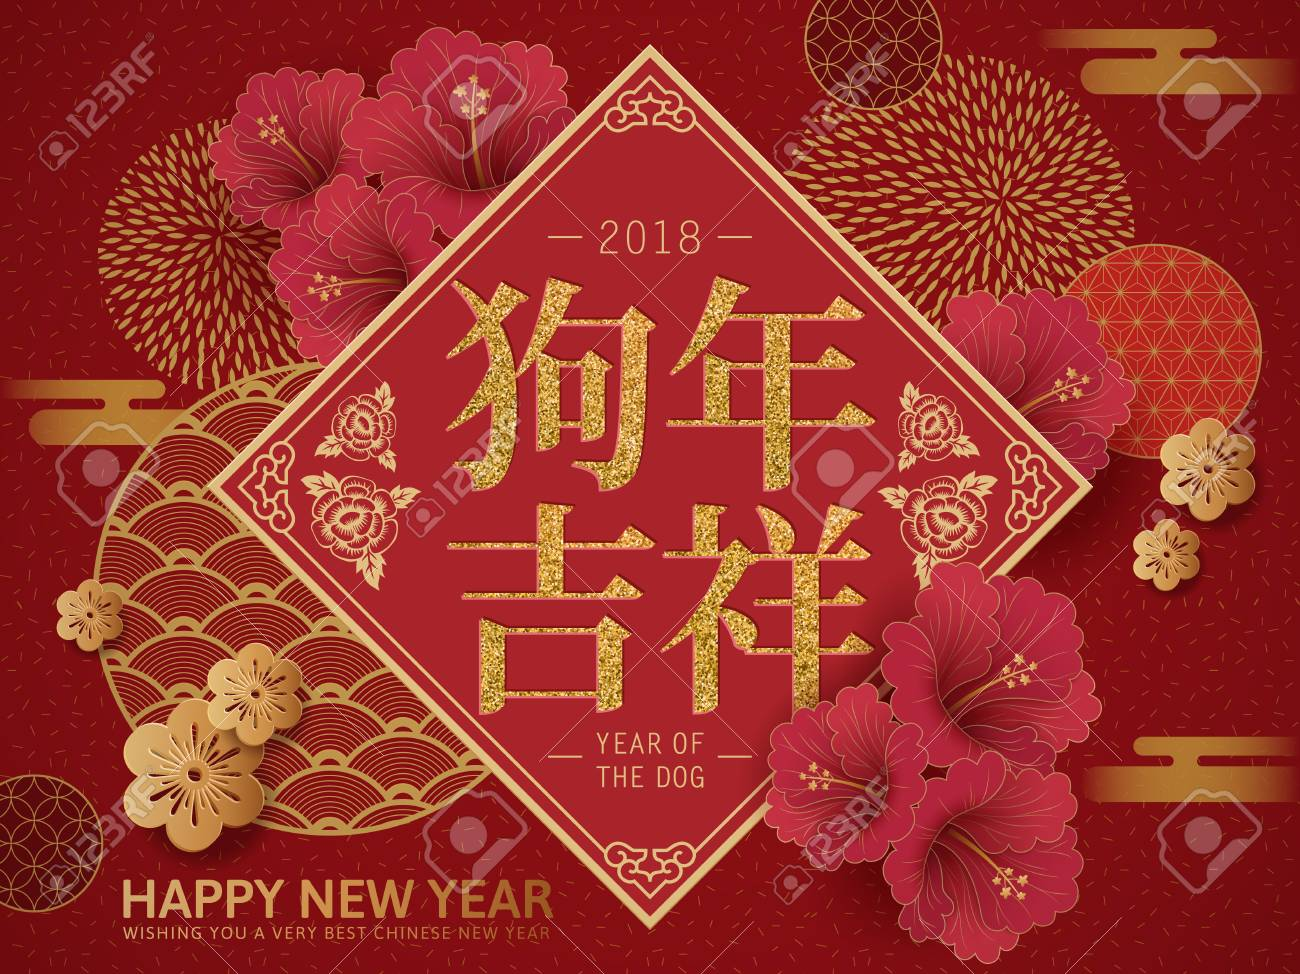 happy chinese new year design year of the dog spring couplet with peony and plum - Chinese New Year In Chinese